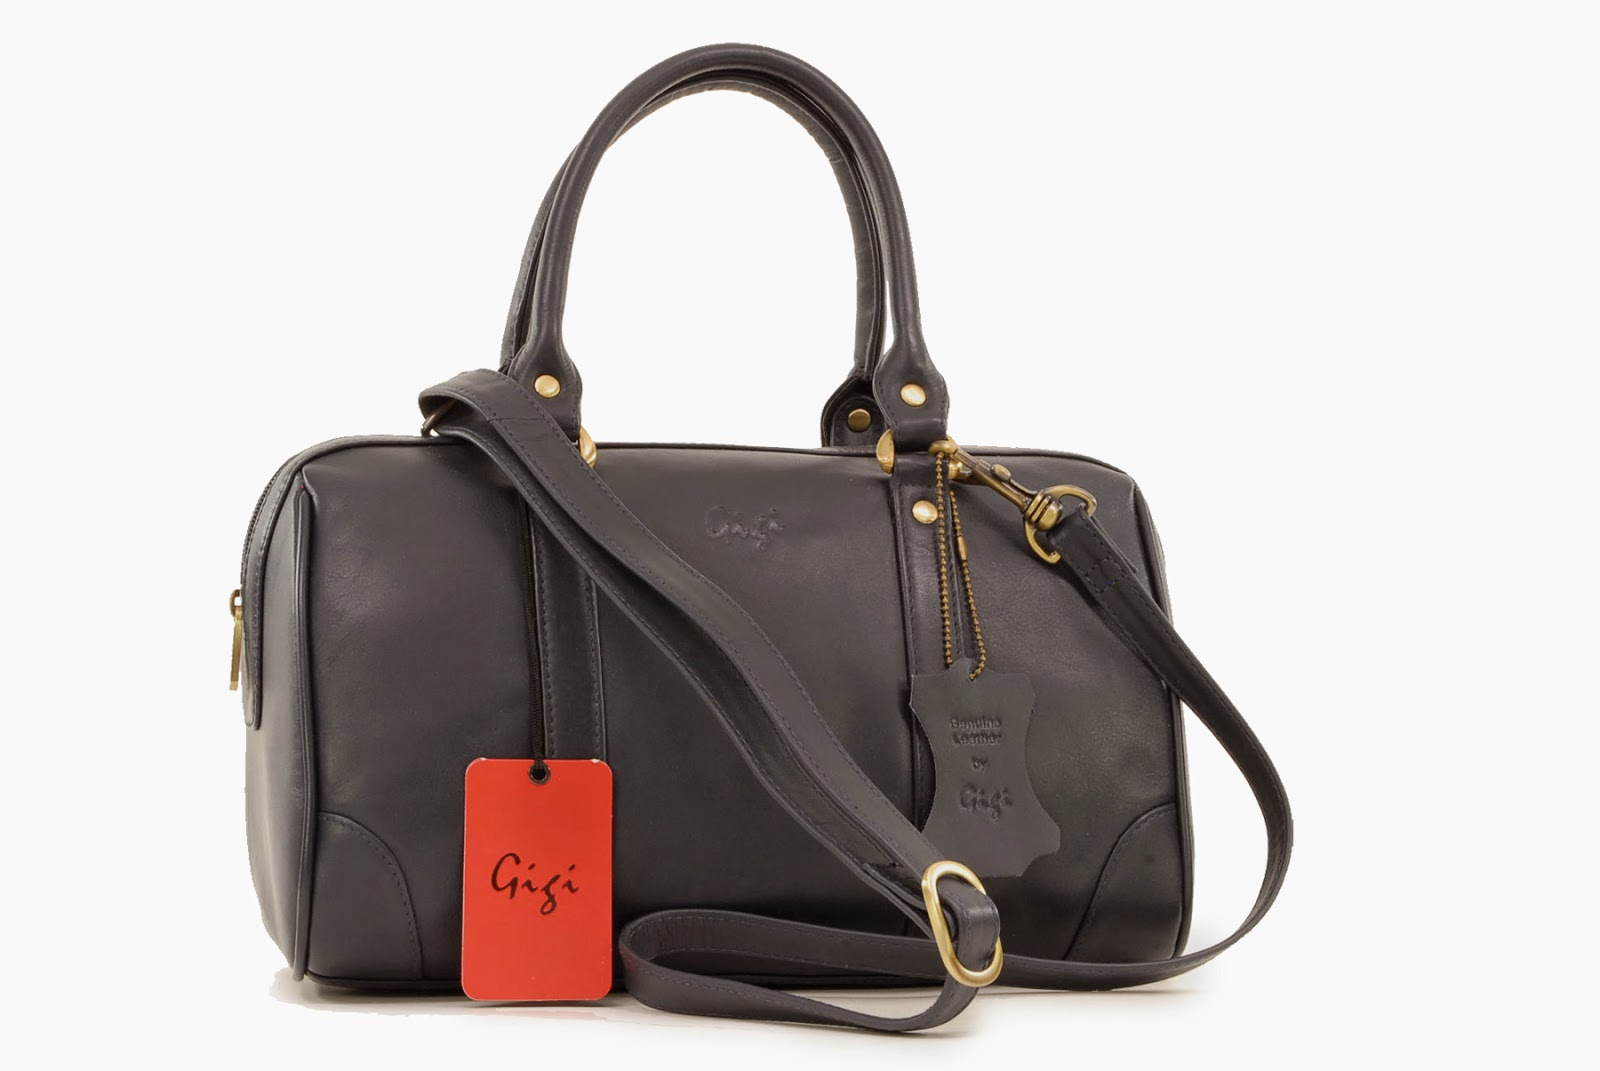 On Our Blog But If You Log Onto The Real Handbag At Uk Will Find Whole Range Of Leather Bags Handbags Wallets And Purses Online